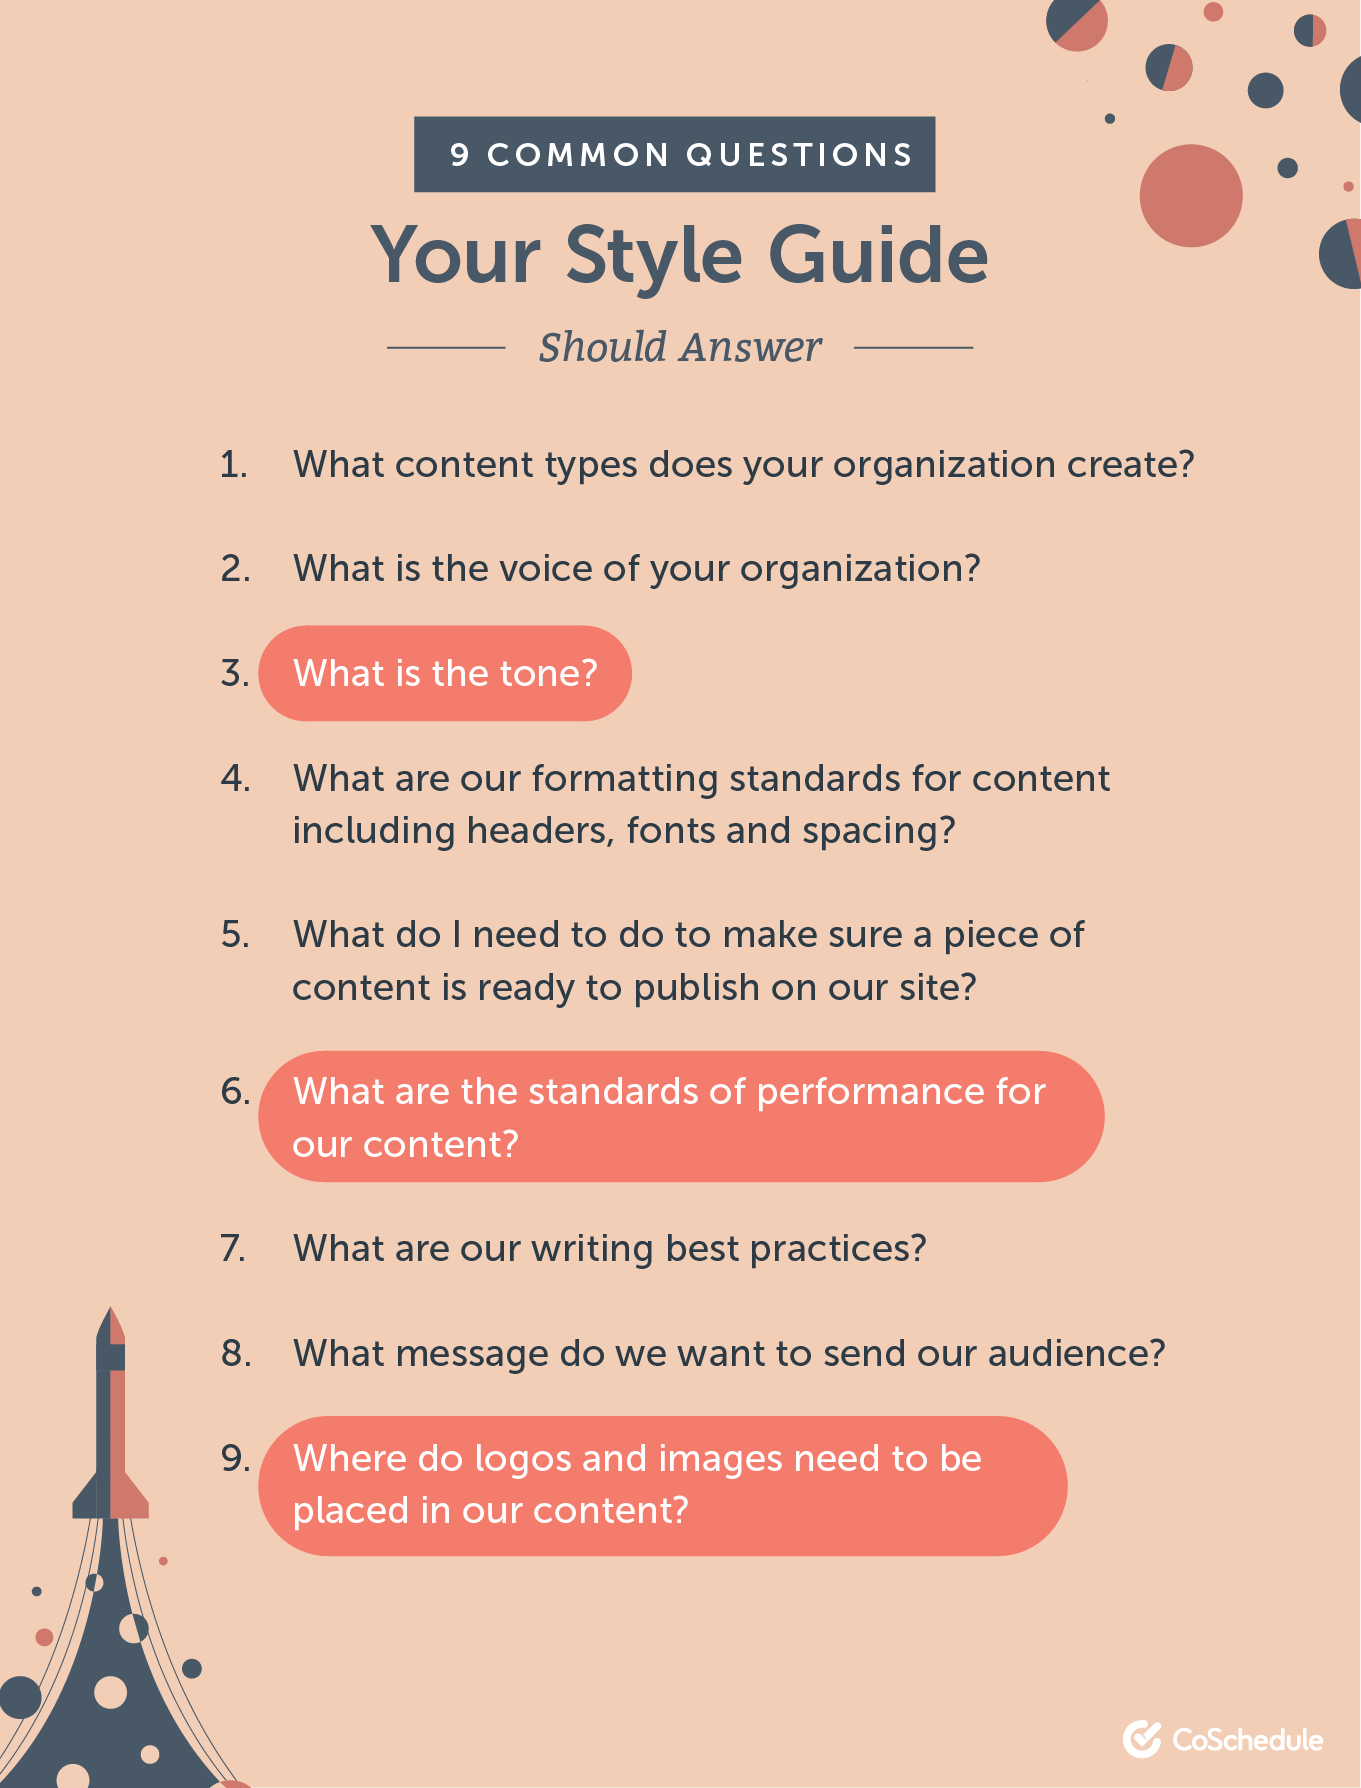 A list of nine common questions that your style guide should be able to answer